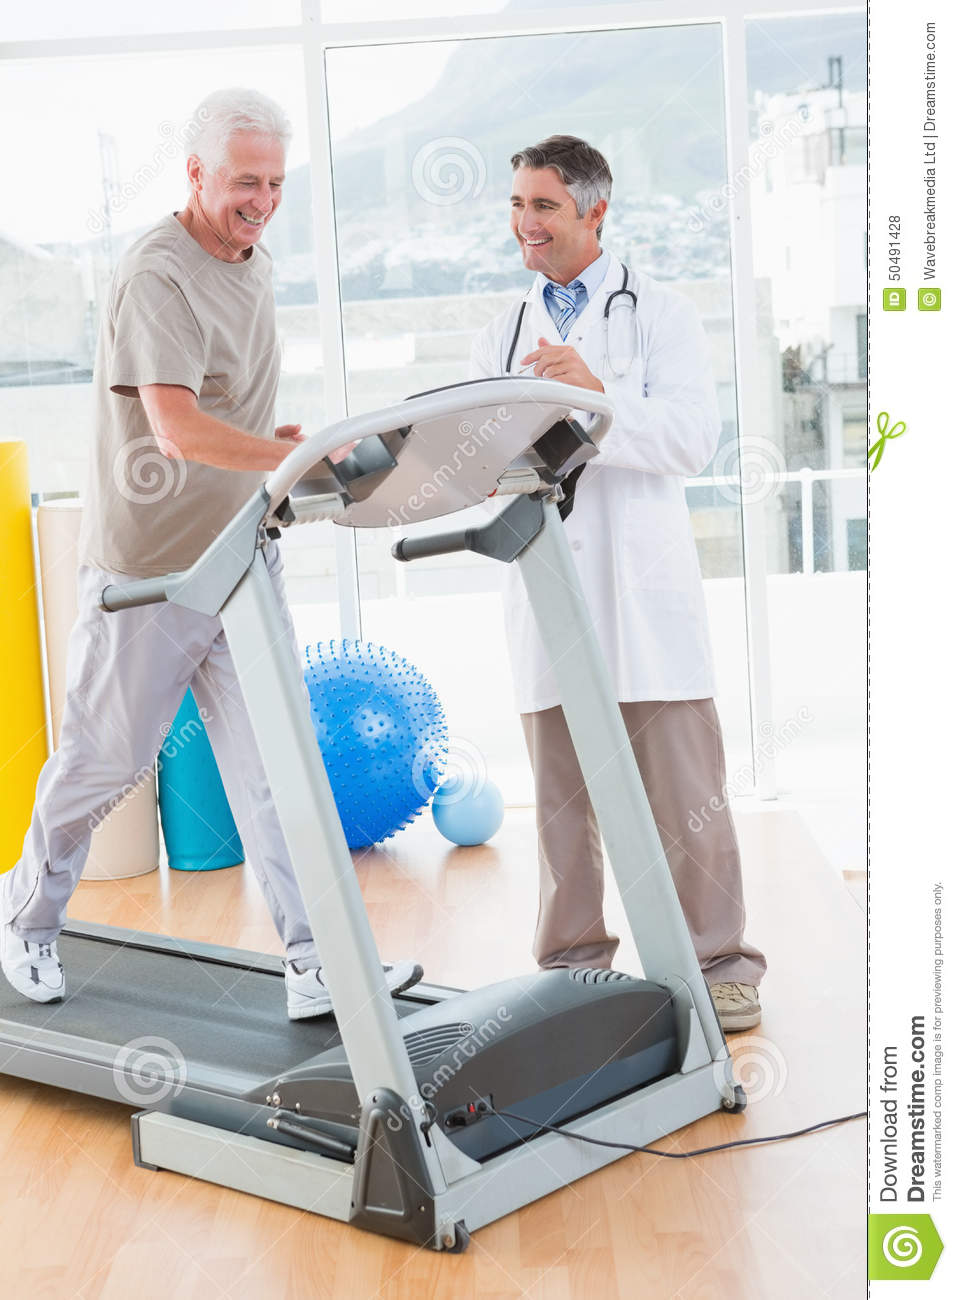 Senior Man On Treadmill With Therapist Stock Photo   Image  50491428